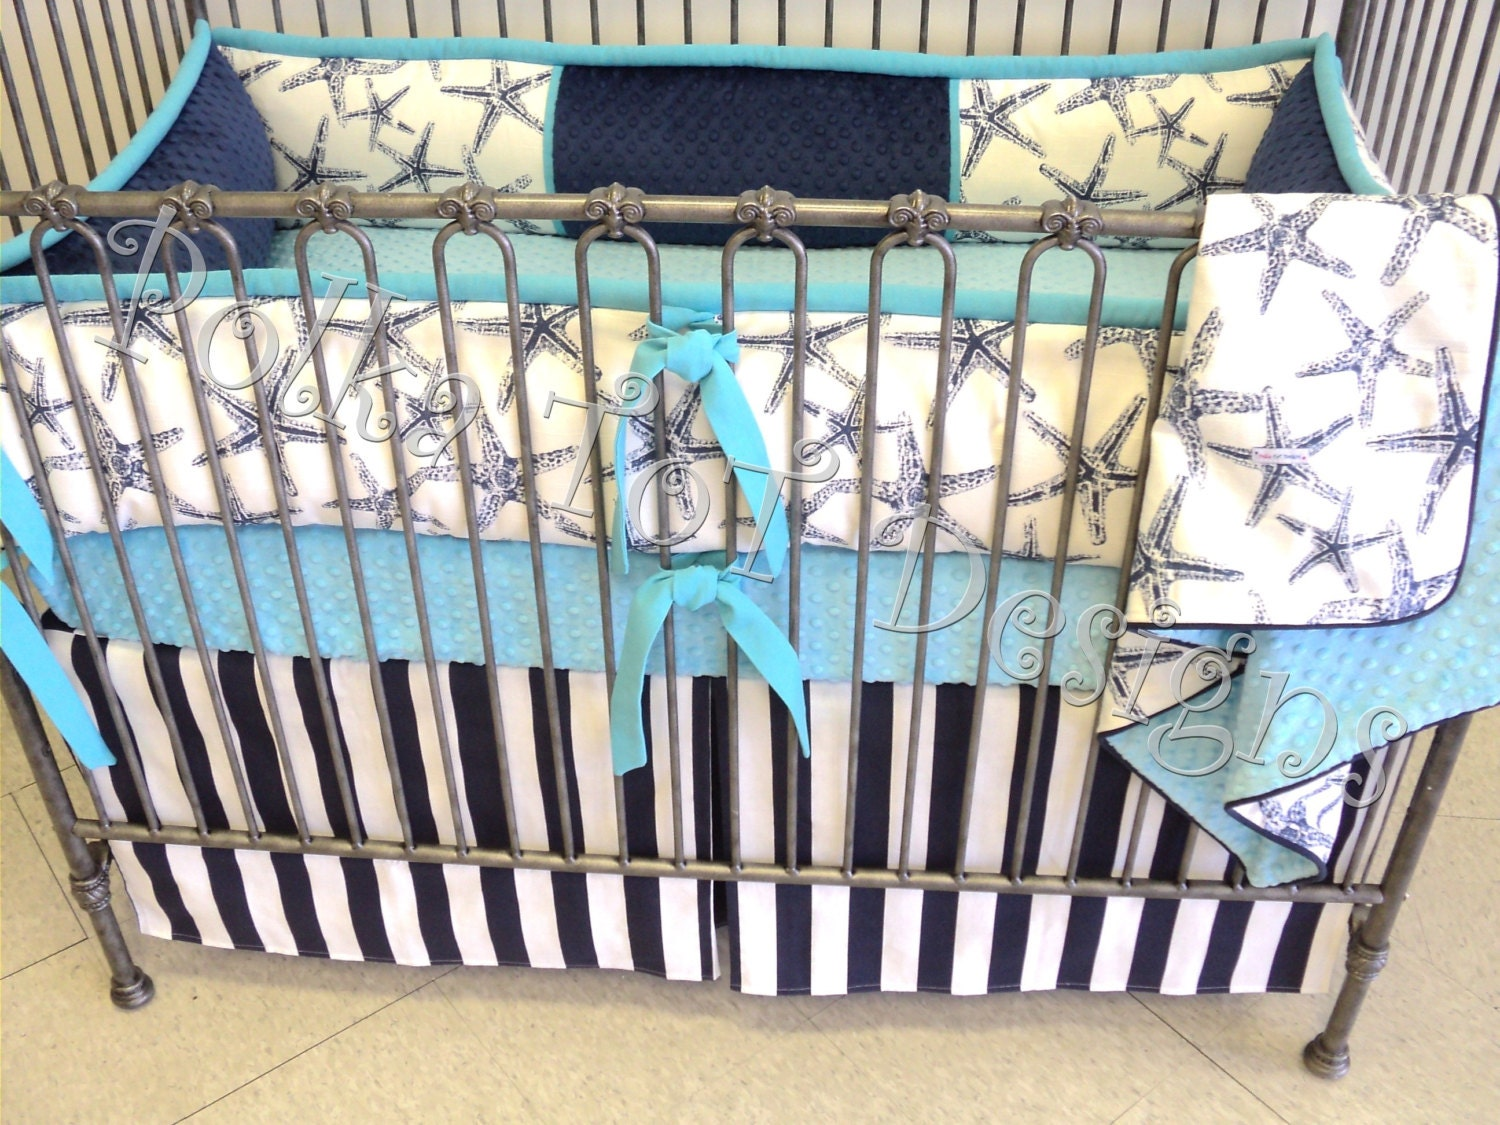 Save beach baby crib bedding to get e-mail alerts and updates on your eBay Feed. + SPONSORED. Grey Cloud and Geometric Patch 3 Piece Baby Crib Bedding Set by The Peanut Shell See more like this. Sweet Jojo Gray Woodland Arrow Gender Neutral Bumperless Baby Bedding Crib Set.